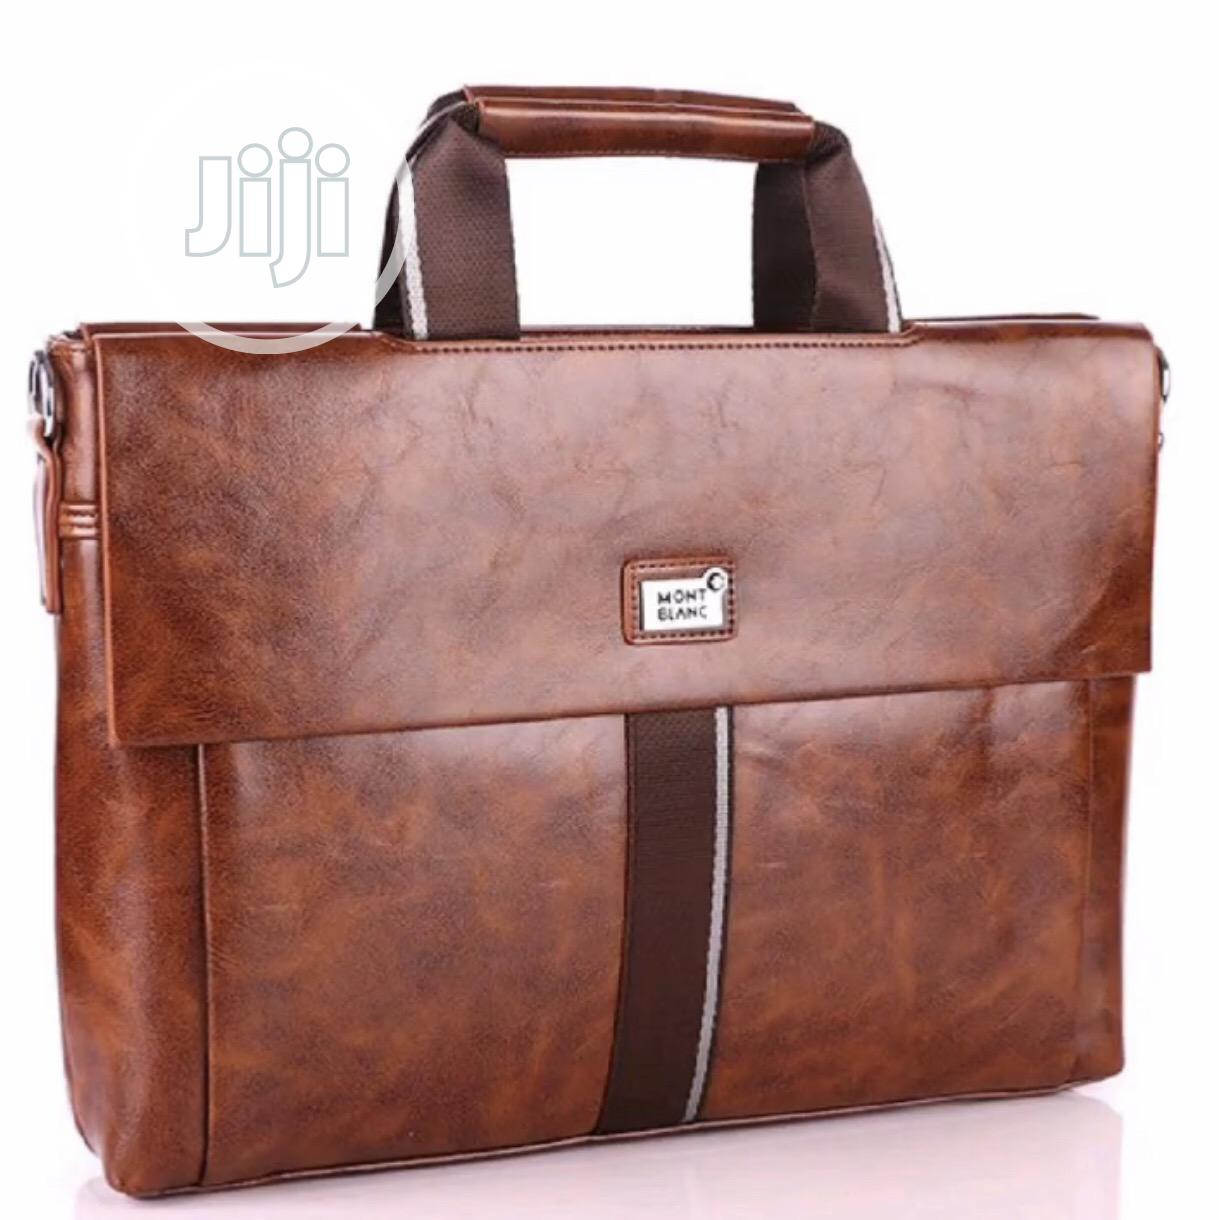 Mont Blanc Leather Office Bag Available as Seen Order Yours Now